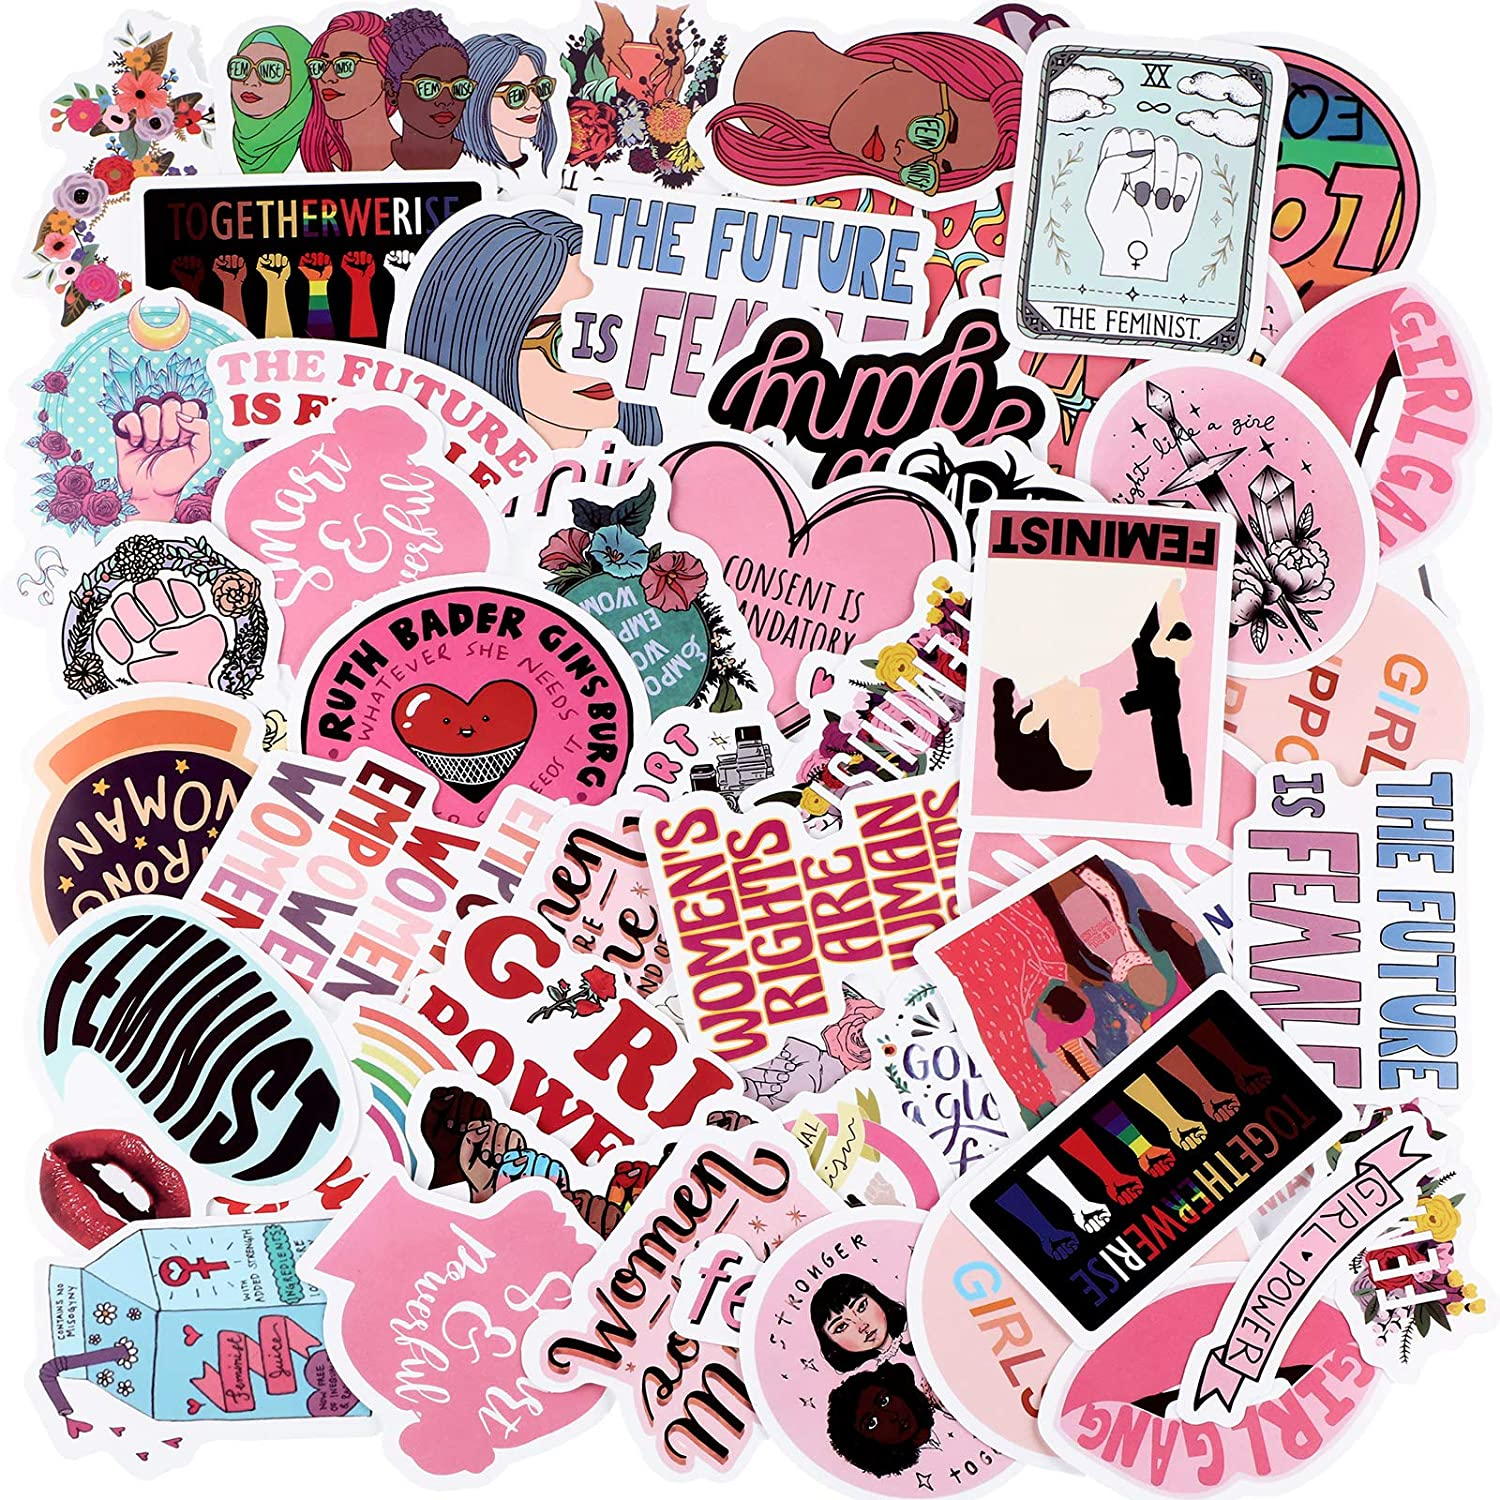 100 Pieces Feminist Stickers Feminism Party Supplies Stickers for Girl, Waterproof Vinyl Stickers Colorful Laptop Stickers Trendy Aesthetic Decals for Water Bottle Laptop Car Bumper